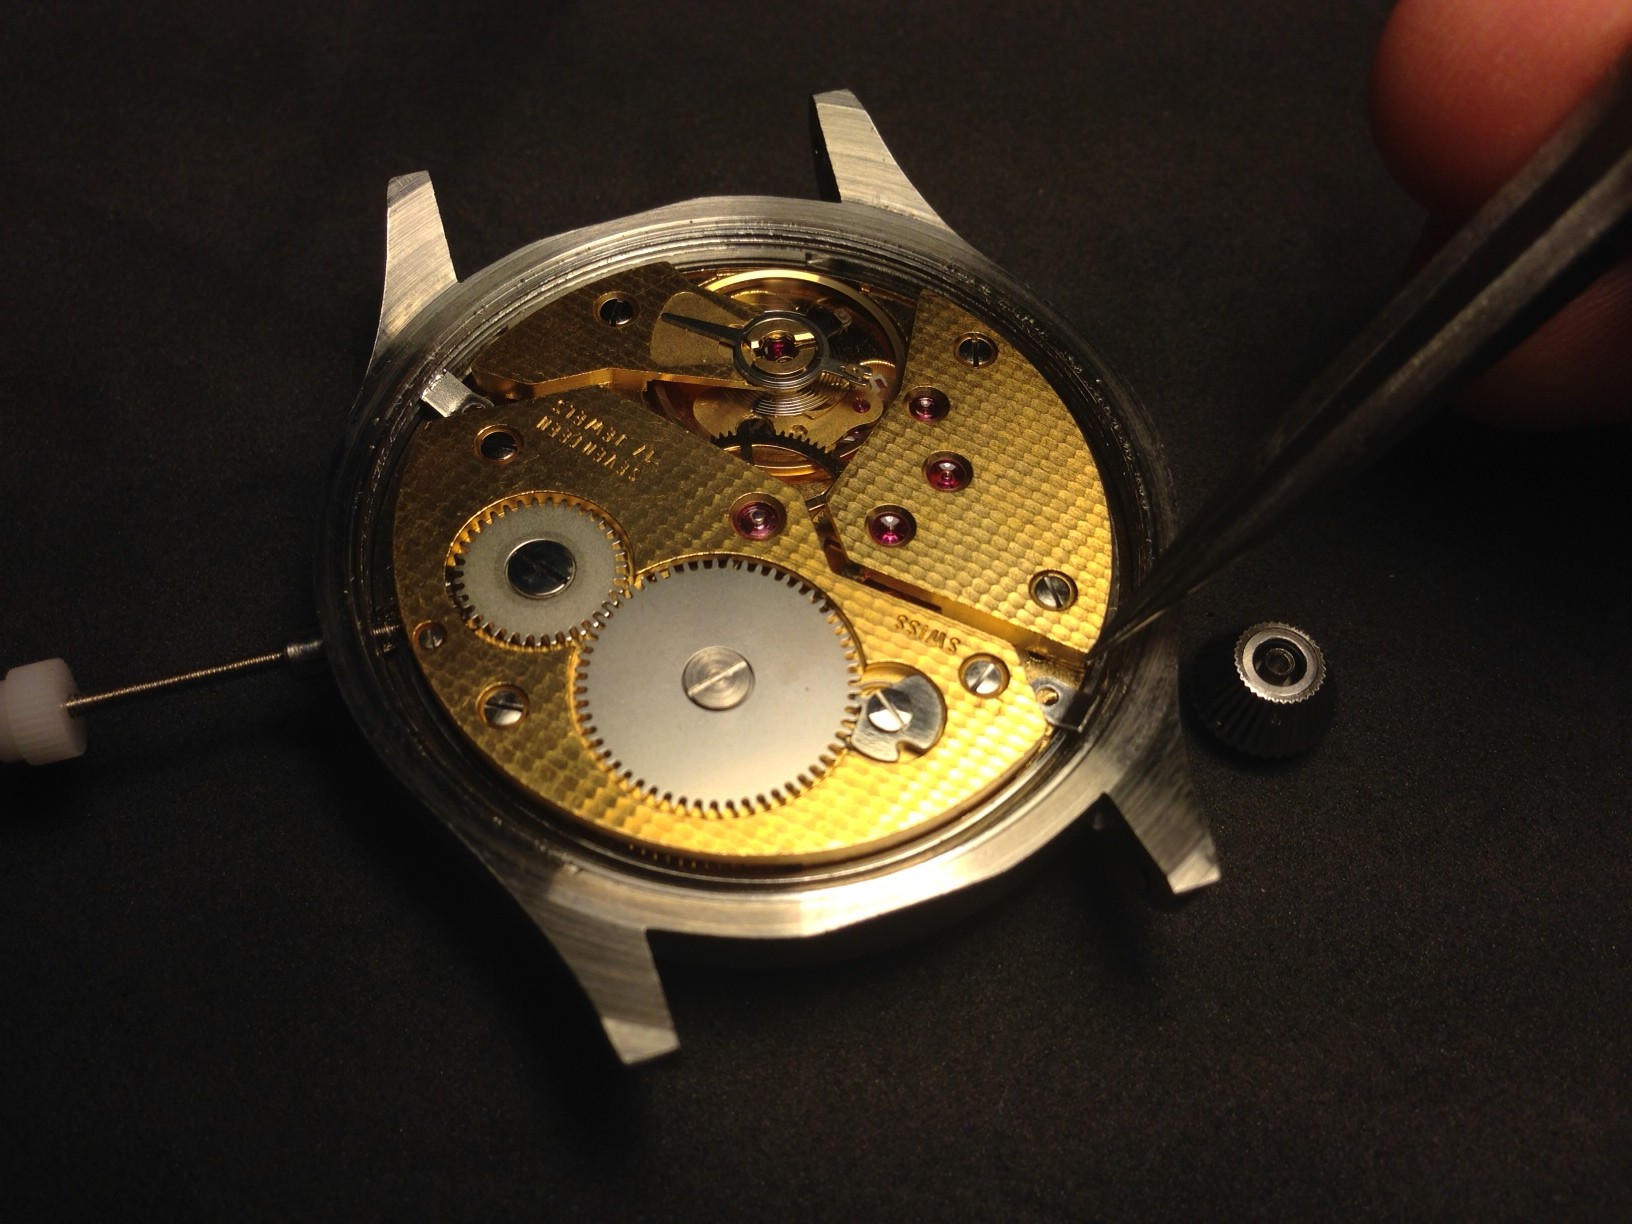 How to build your own mechanical watch - attach the stem